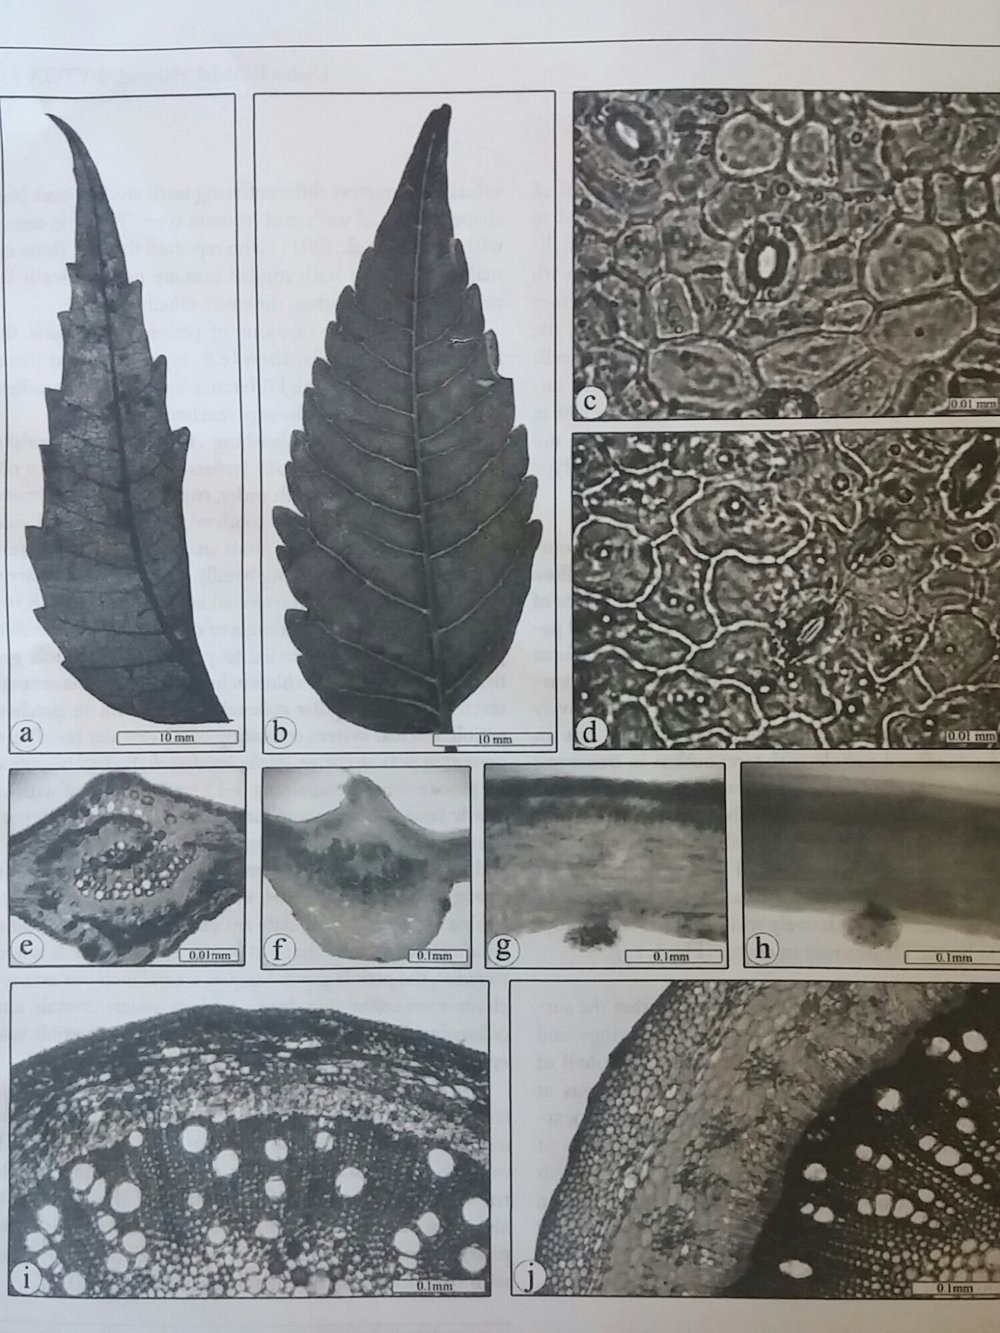 Photographs illustrating foliar characteristics of Azadirachta indica (a,c,e,g,i) and Melia azedarach (b,d,f,h,j).